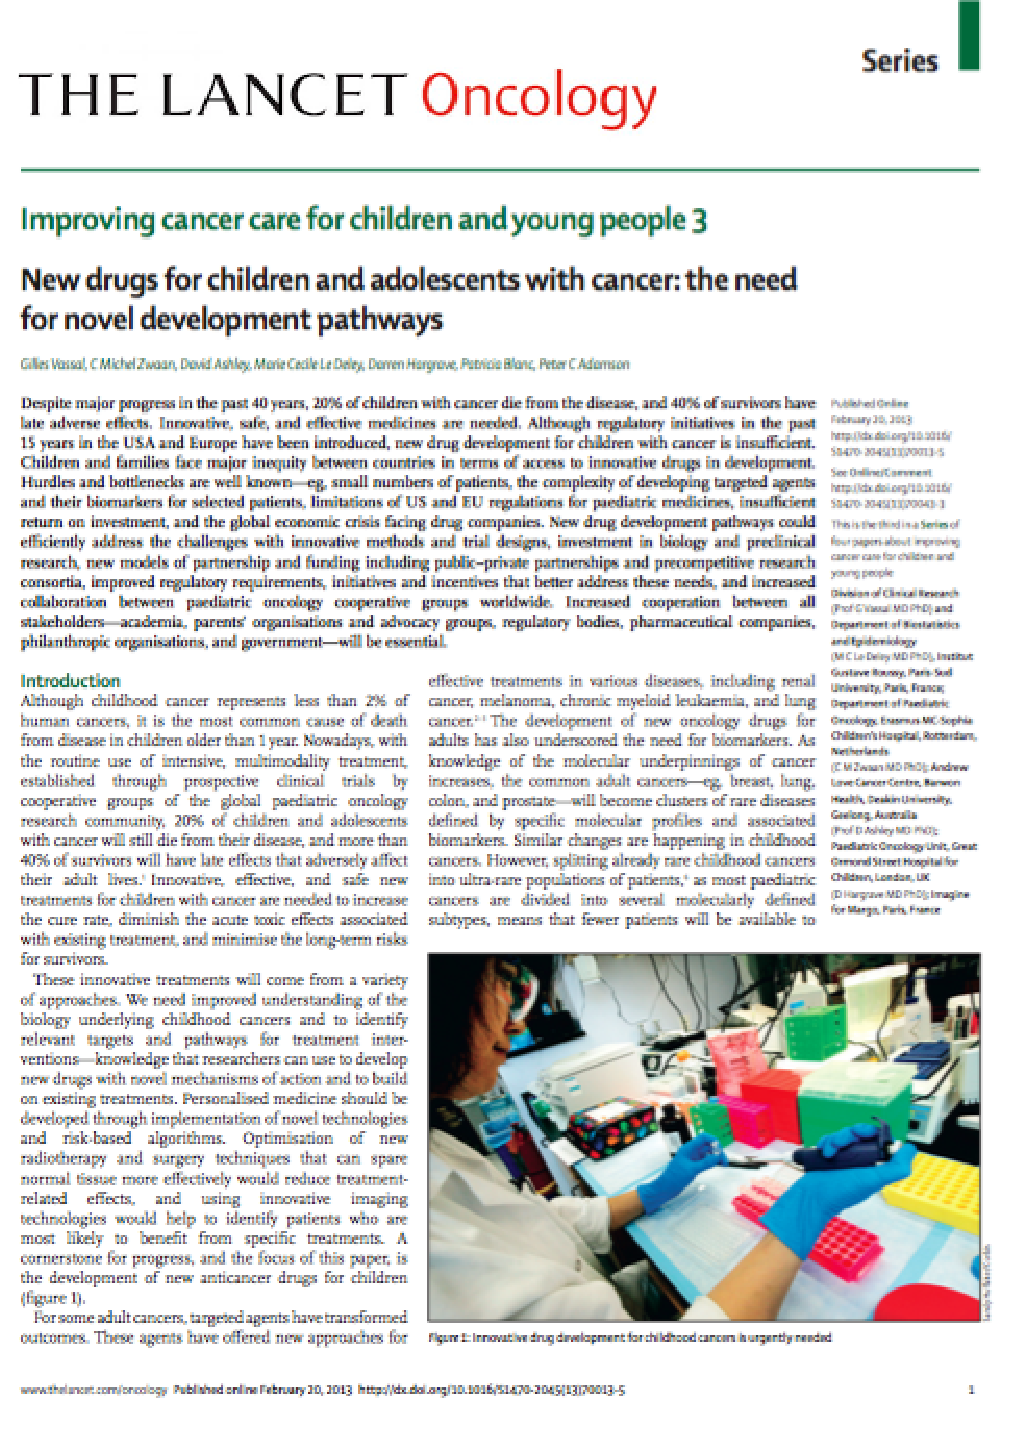 February 2013 - New drugs for children and adolescents with cancer : the need for novel development pathways